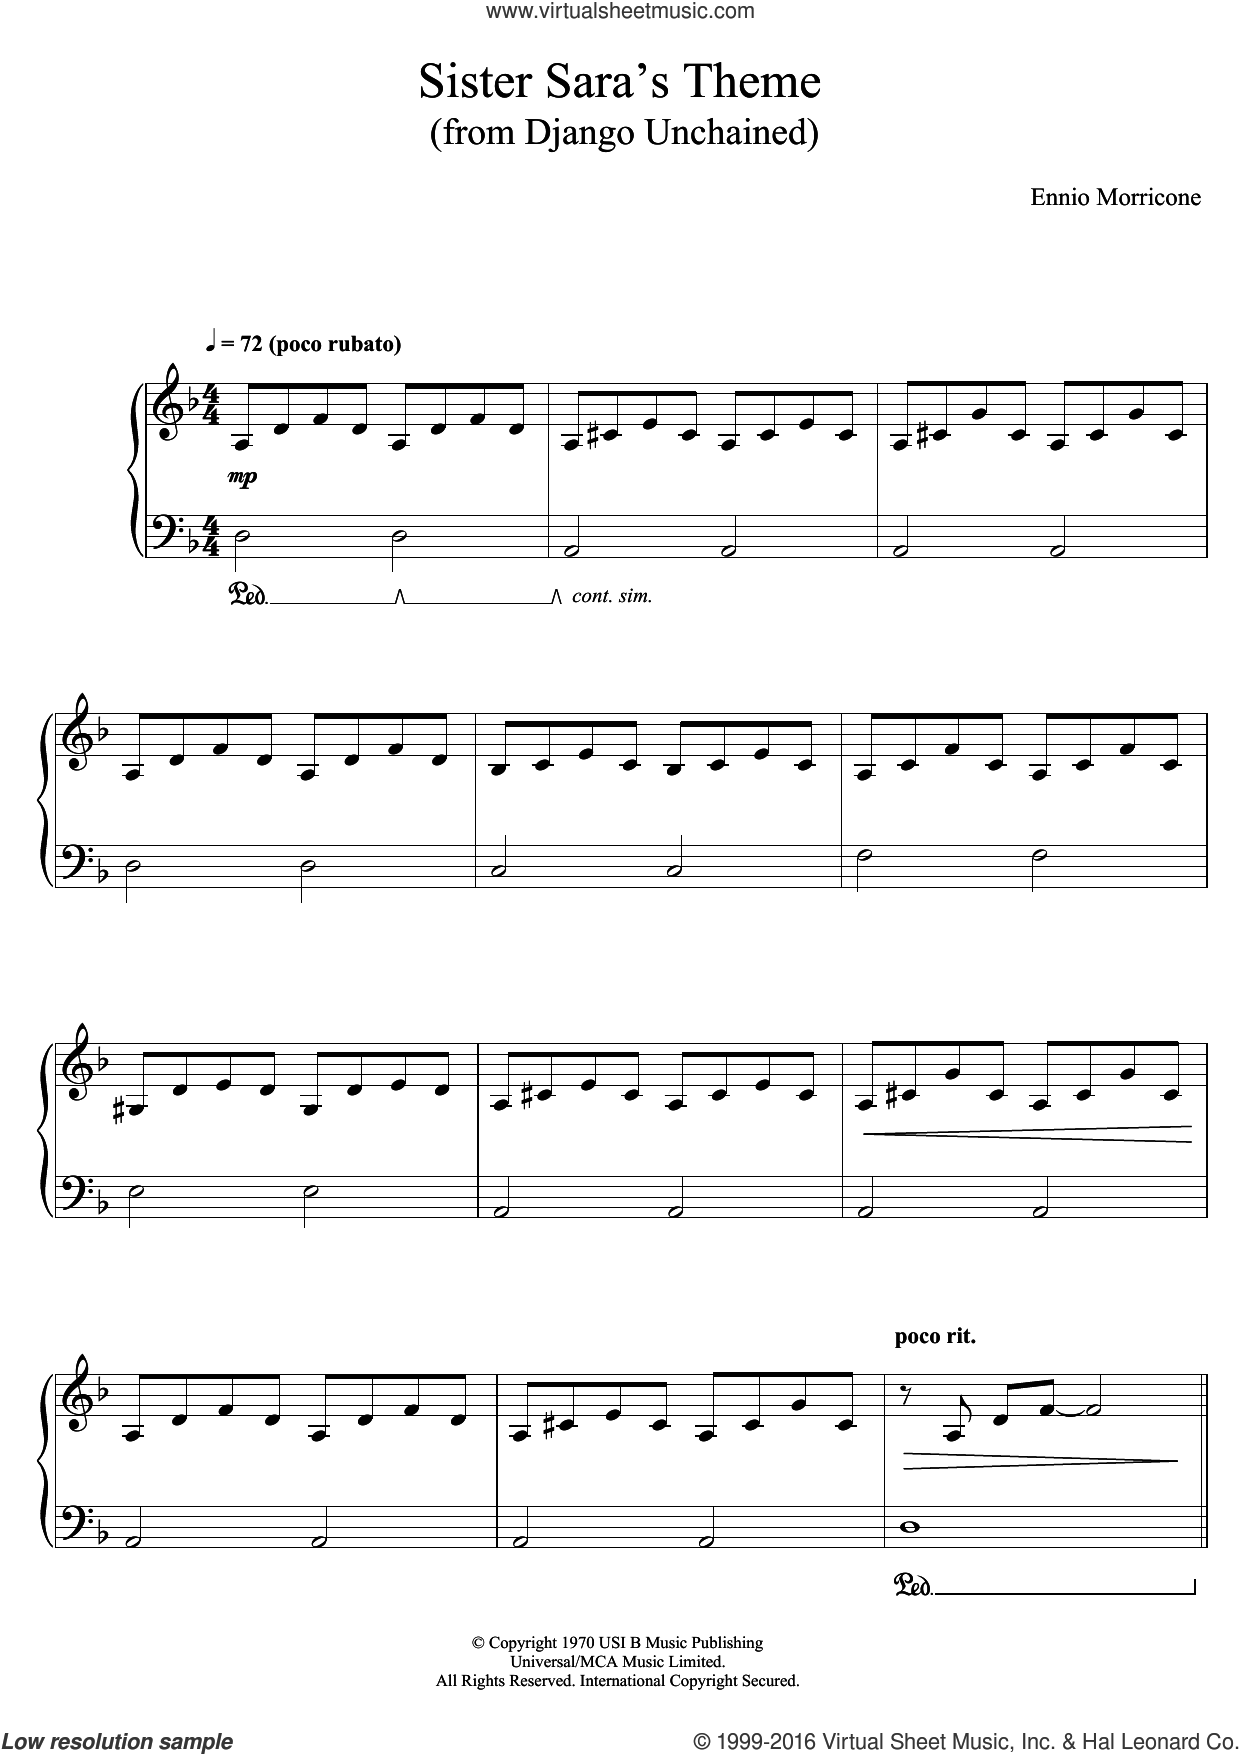 Sister Sara's Theme (Django Unchained) sheet music for piano solo by Ennio Morricone, classical score, intermediate skill level